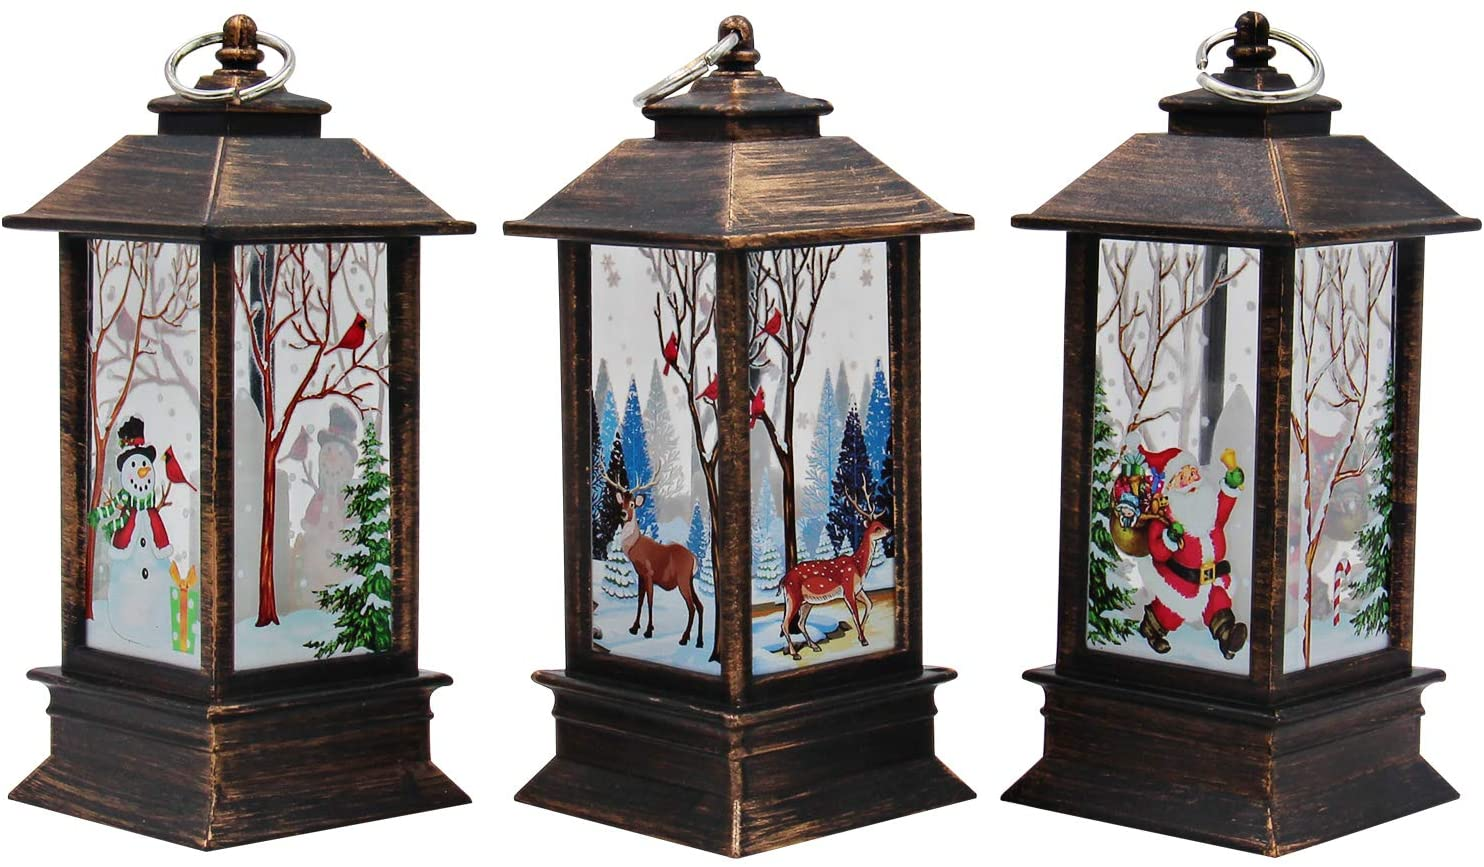 3 PCS Christmas Decoration Lamp Simulated Flame Candle Night Light Santa Claus Snowman Elk Hanging Lamps - Battery Included